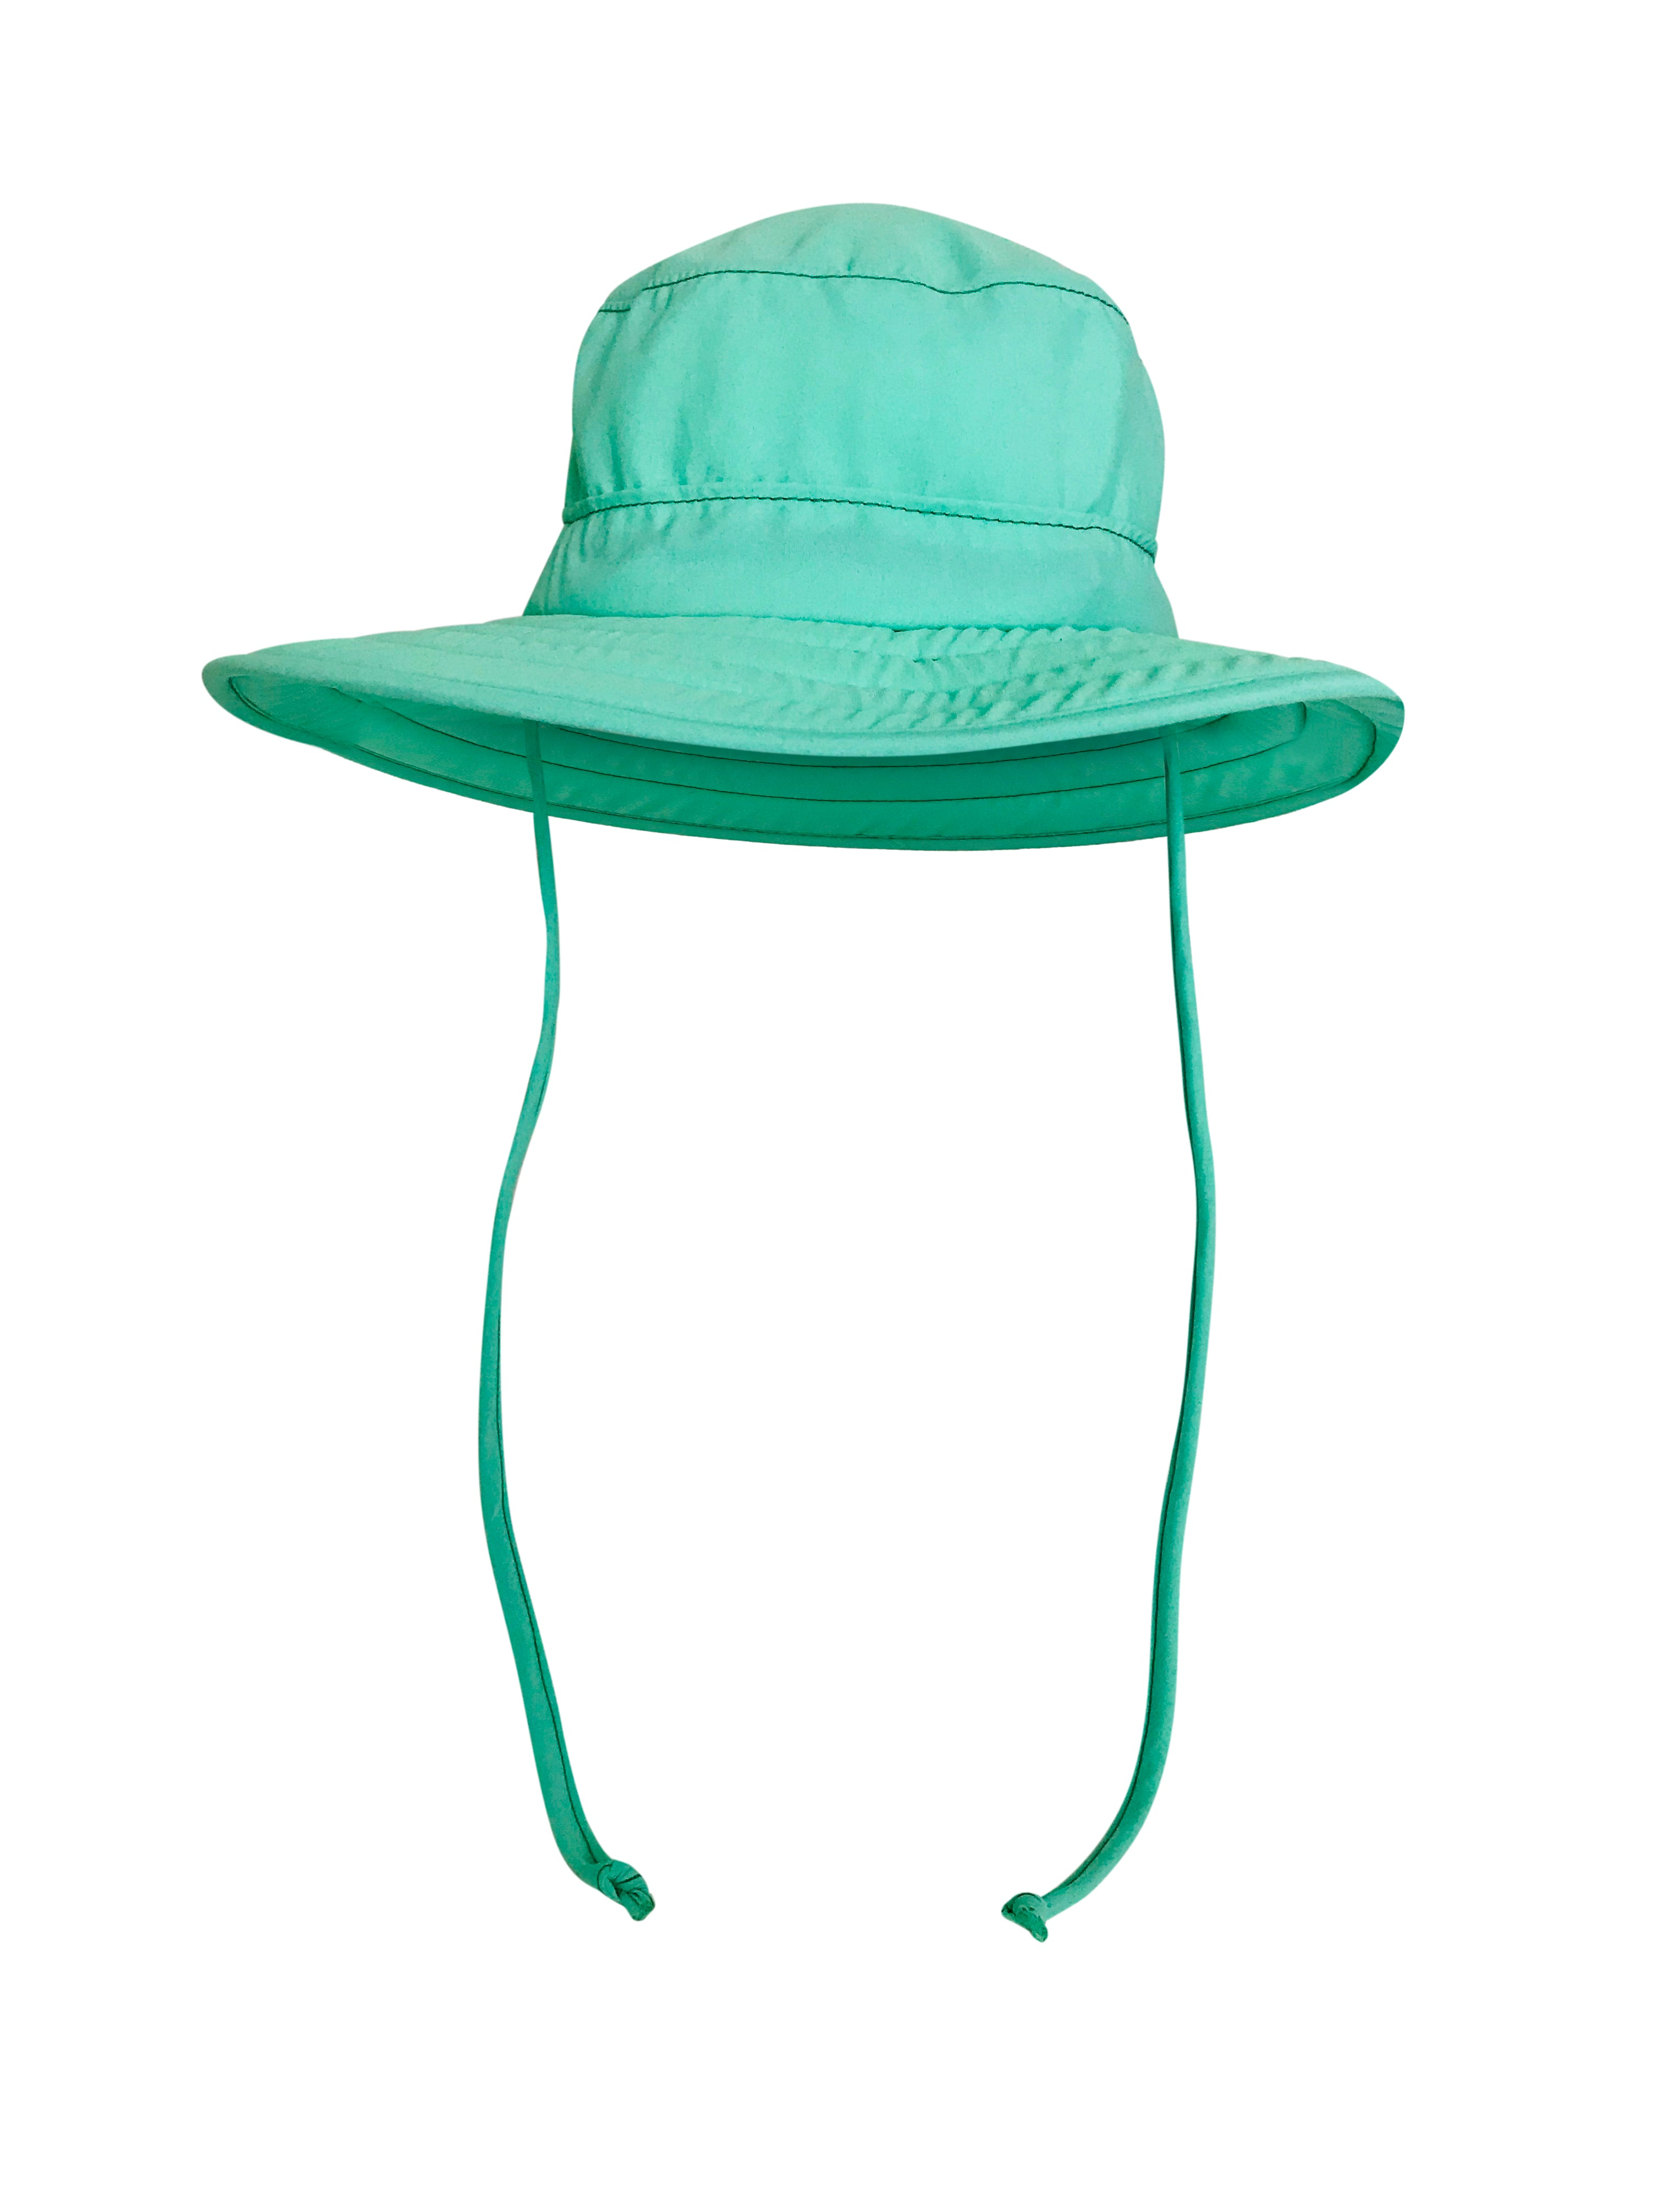 ZeuKnLu Lucite Green Sun Hat With Fleece Liner Front View